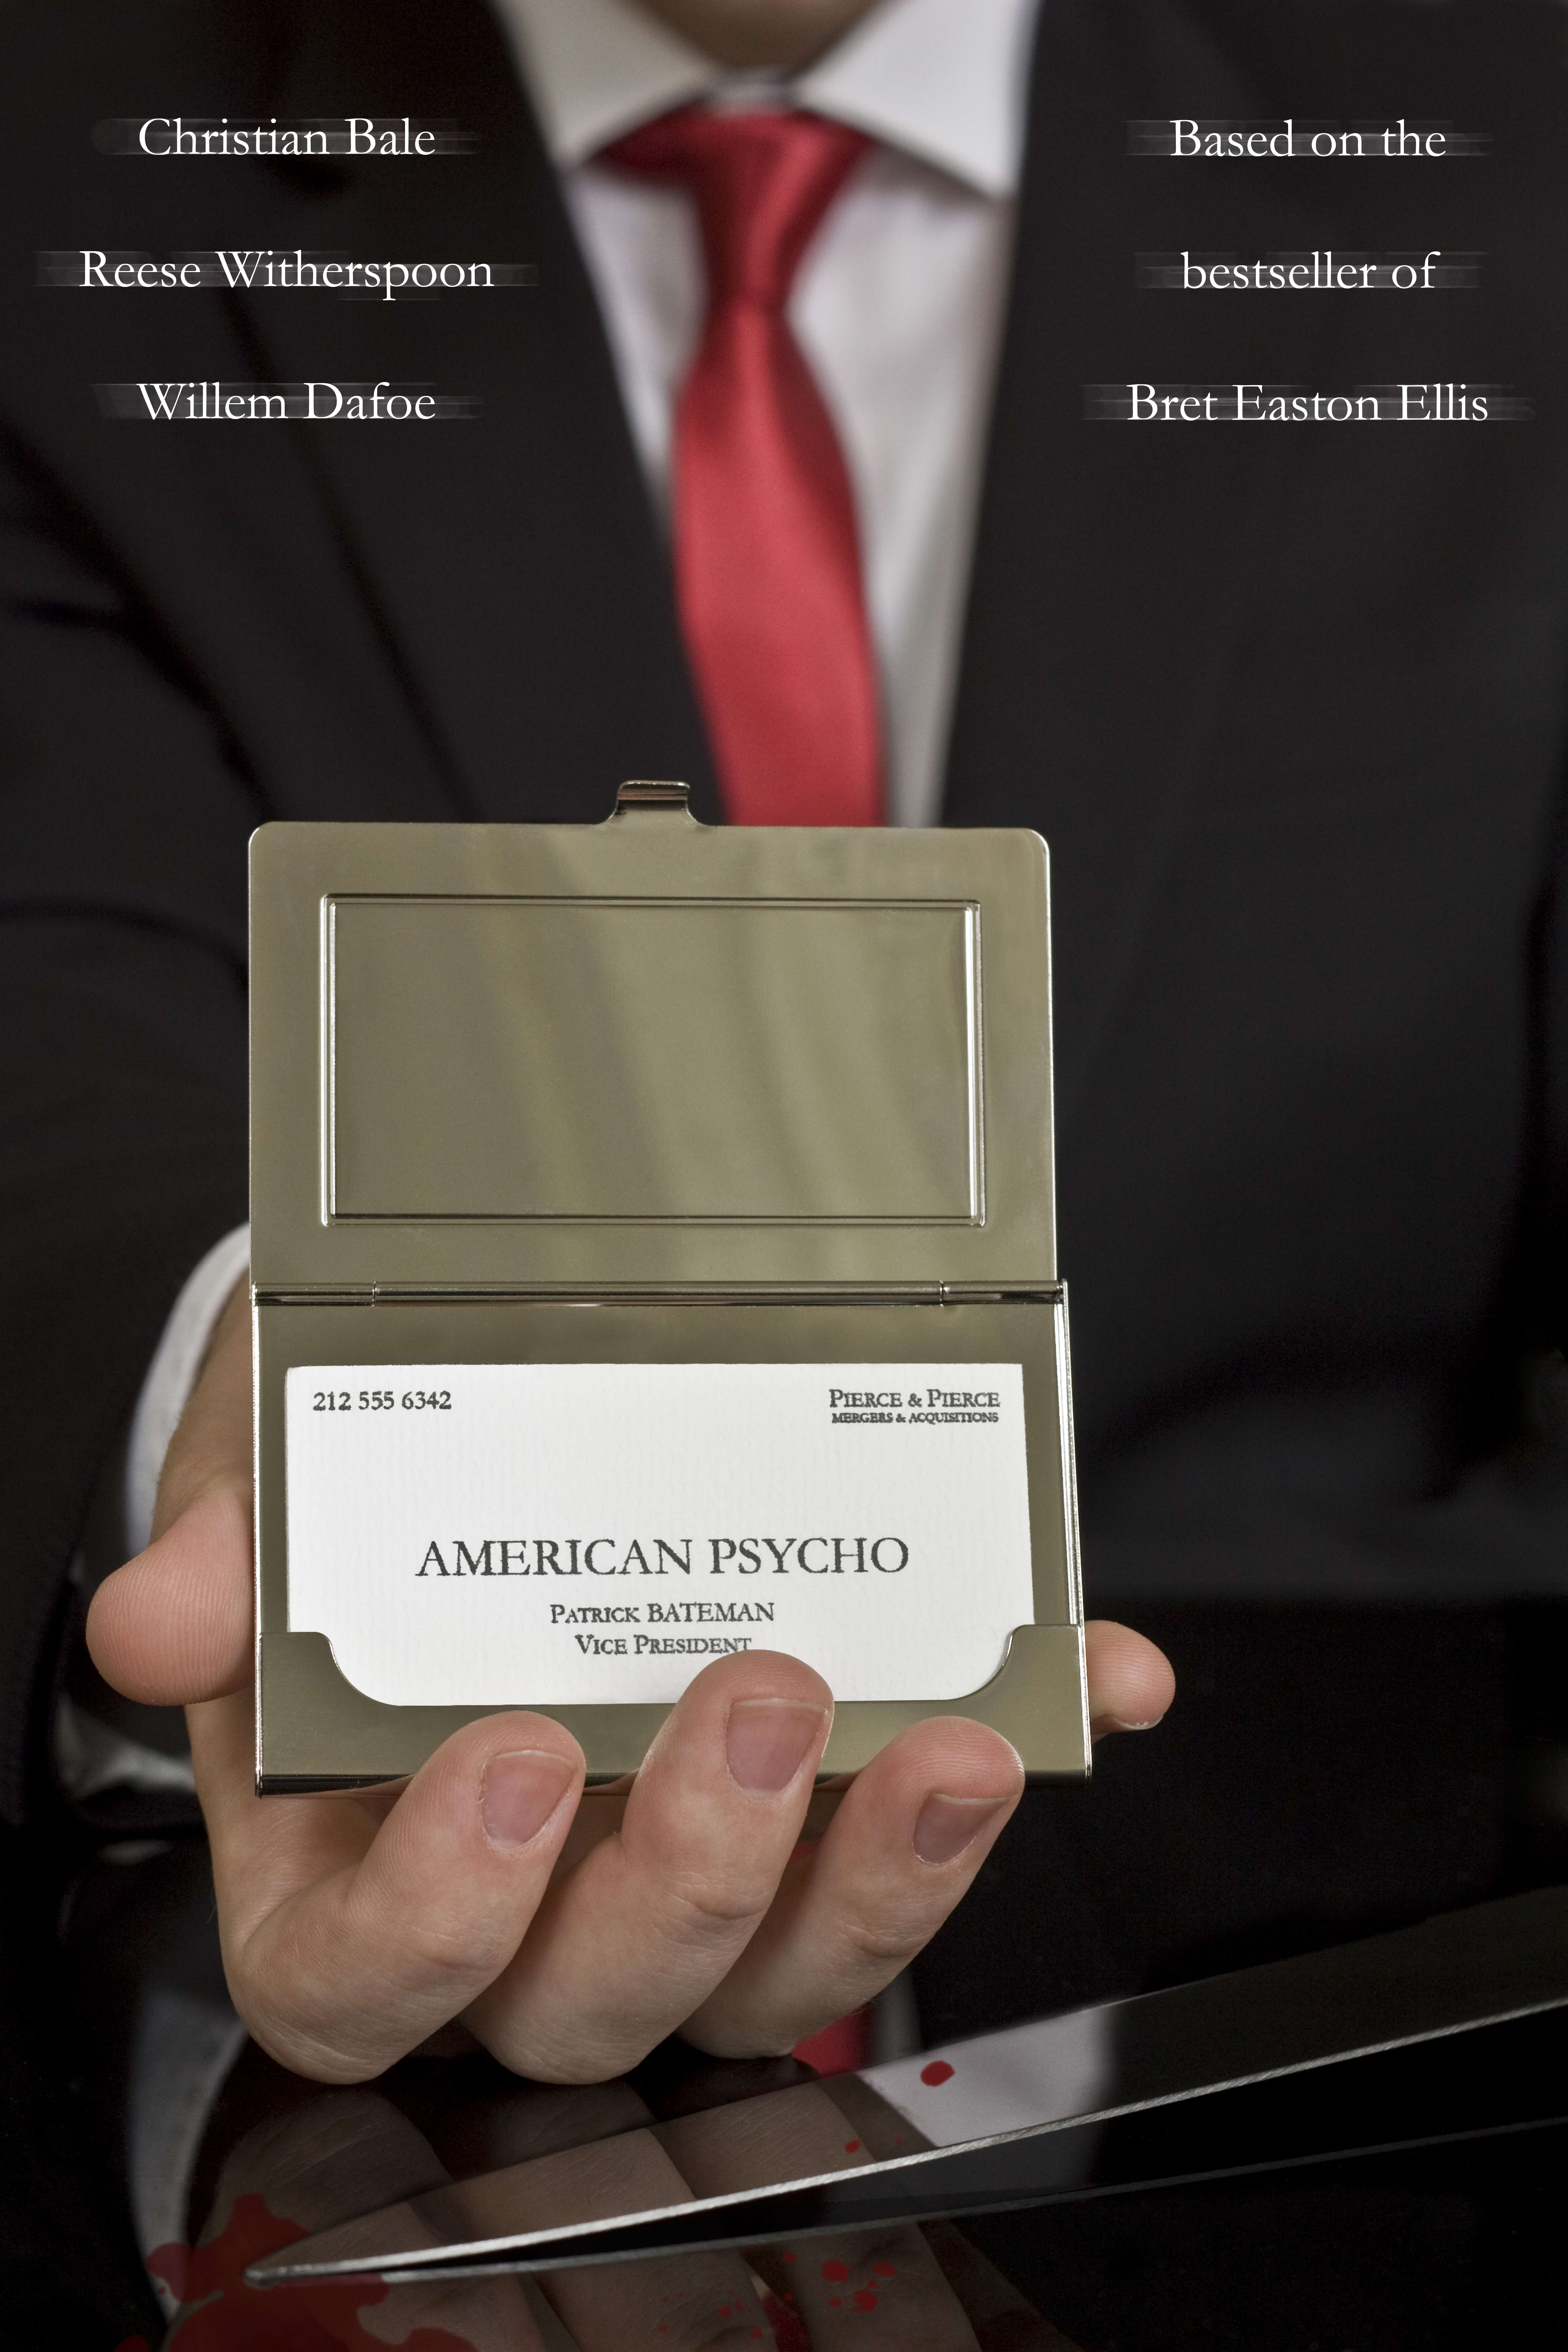 American psycho movie poster by maikel s on deviantart american psycho movie poster by maikel s magicingreecefo Image collections